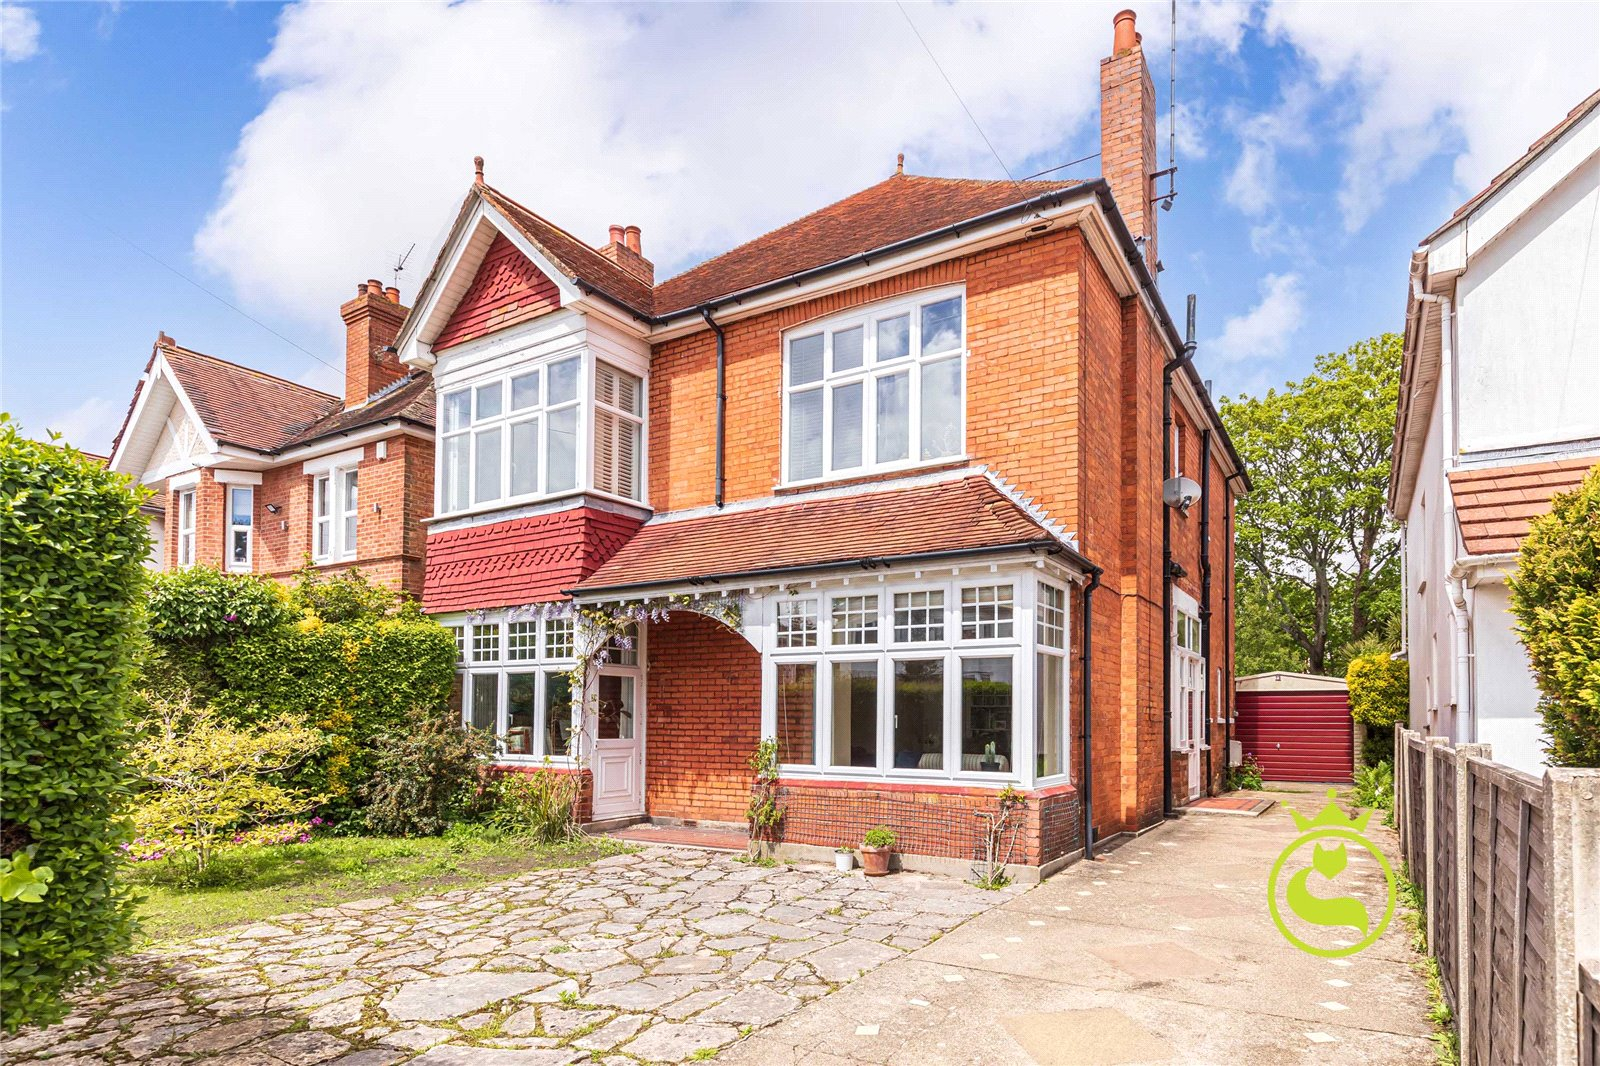 4 bed house for sale in Parkstone Avenue, Lower Parkstone  - Property Image 1